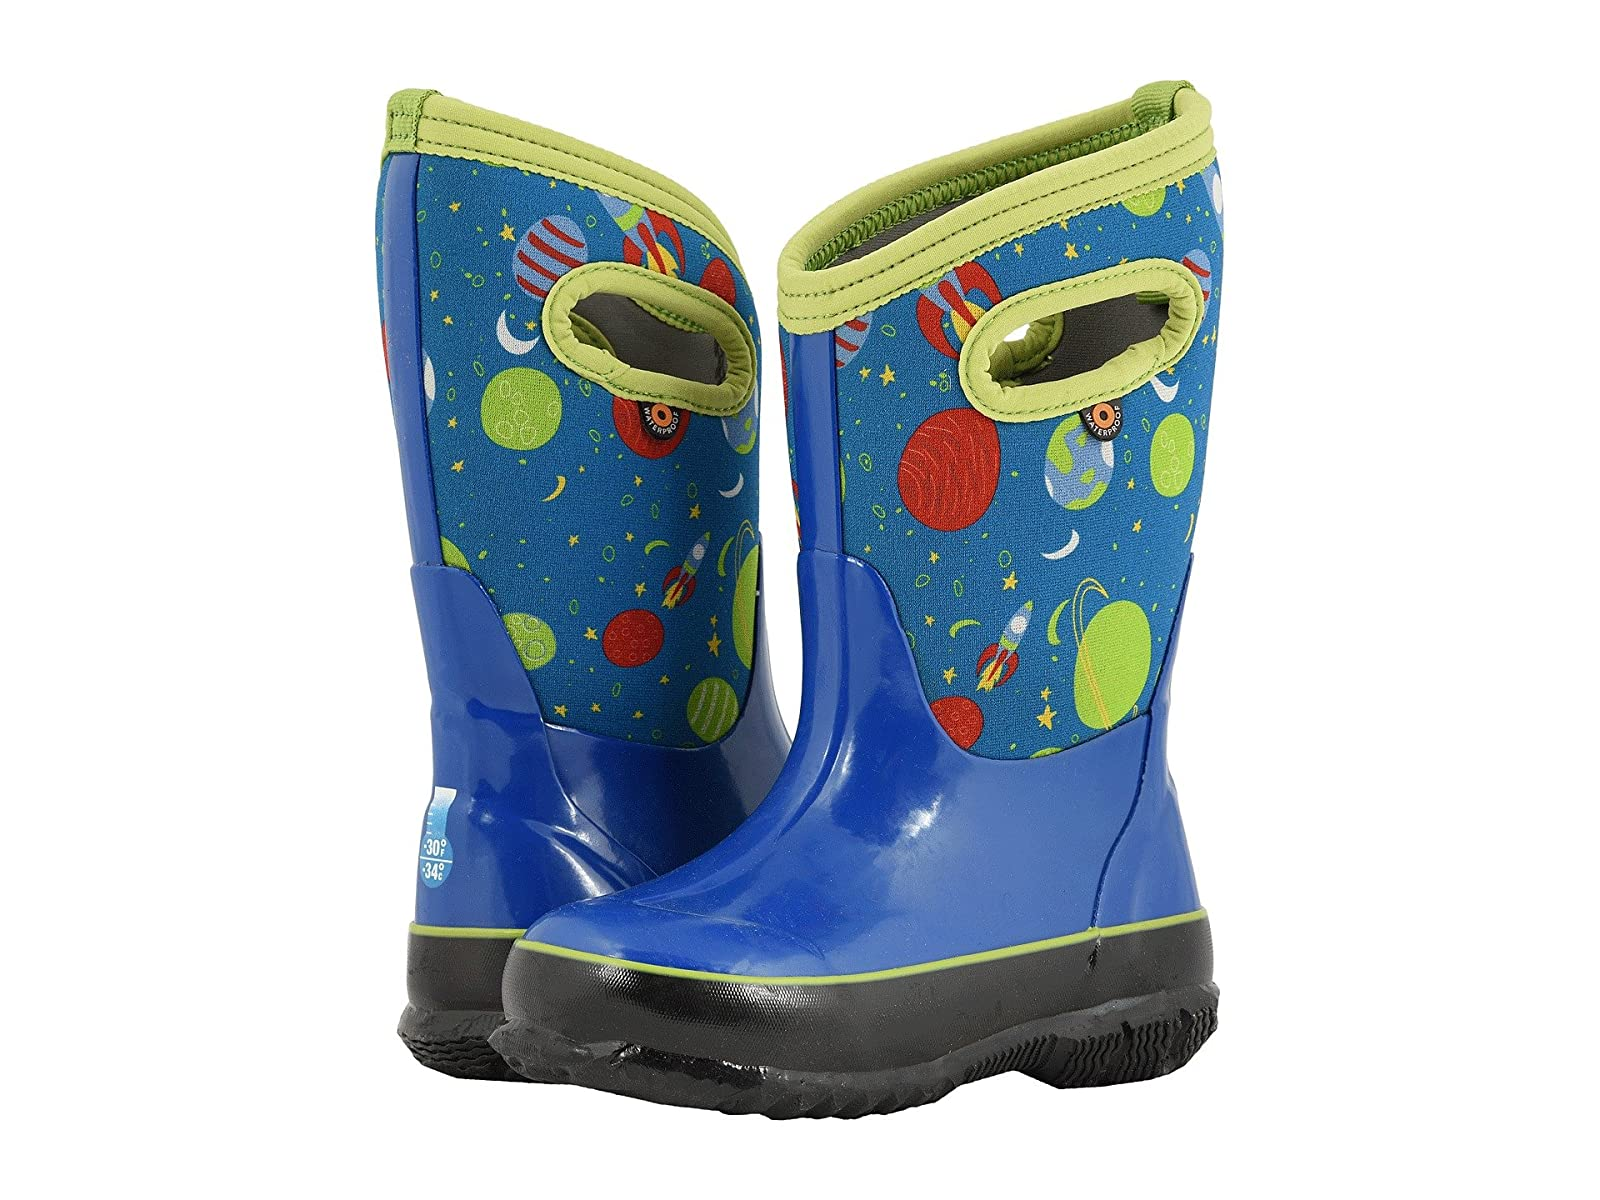 Bogs Kids Classic Space (Toddler/Little Kid/Big Kid)Selling fashionable and eye-catching shoes